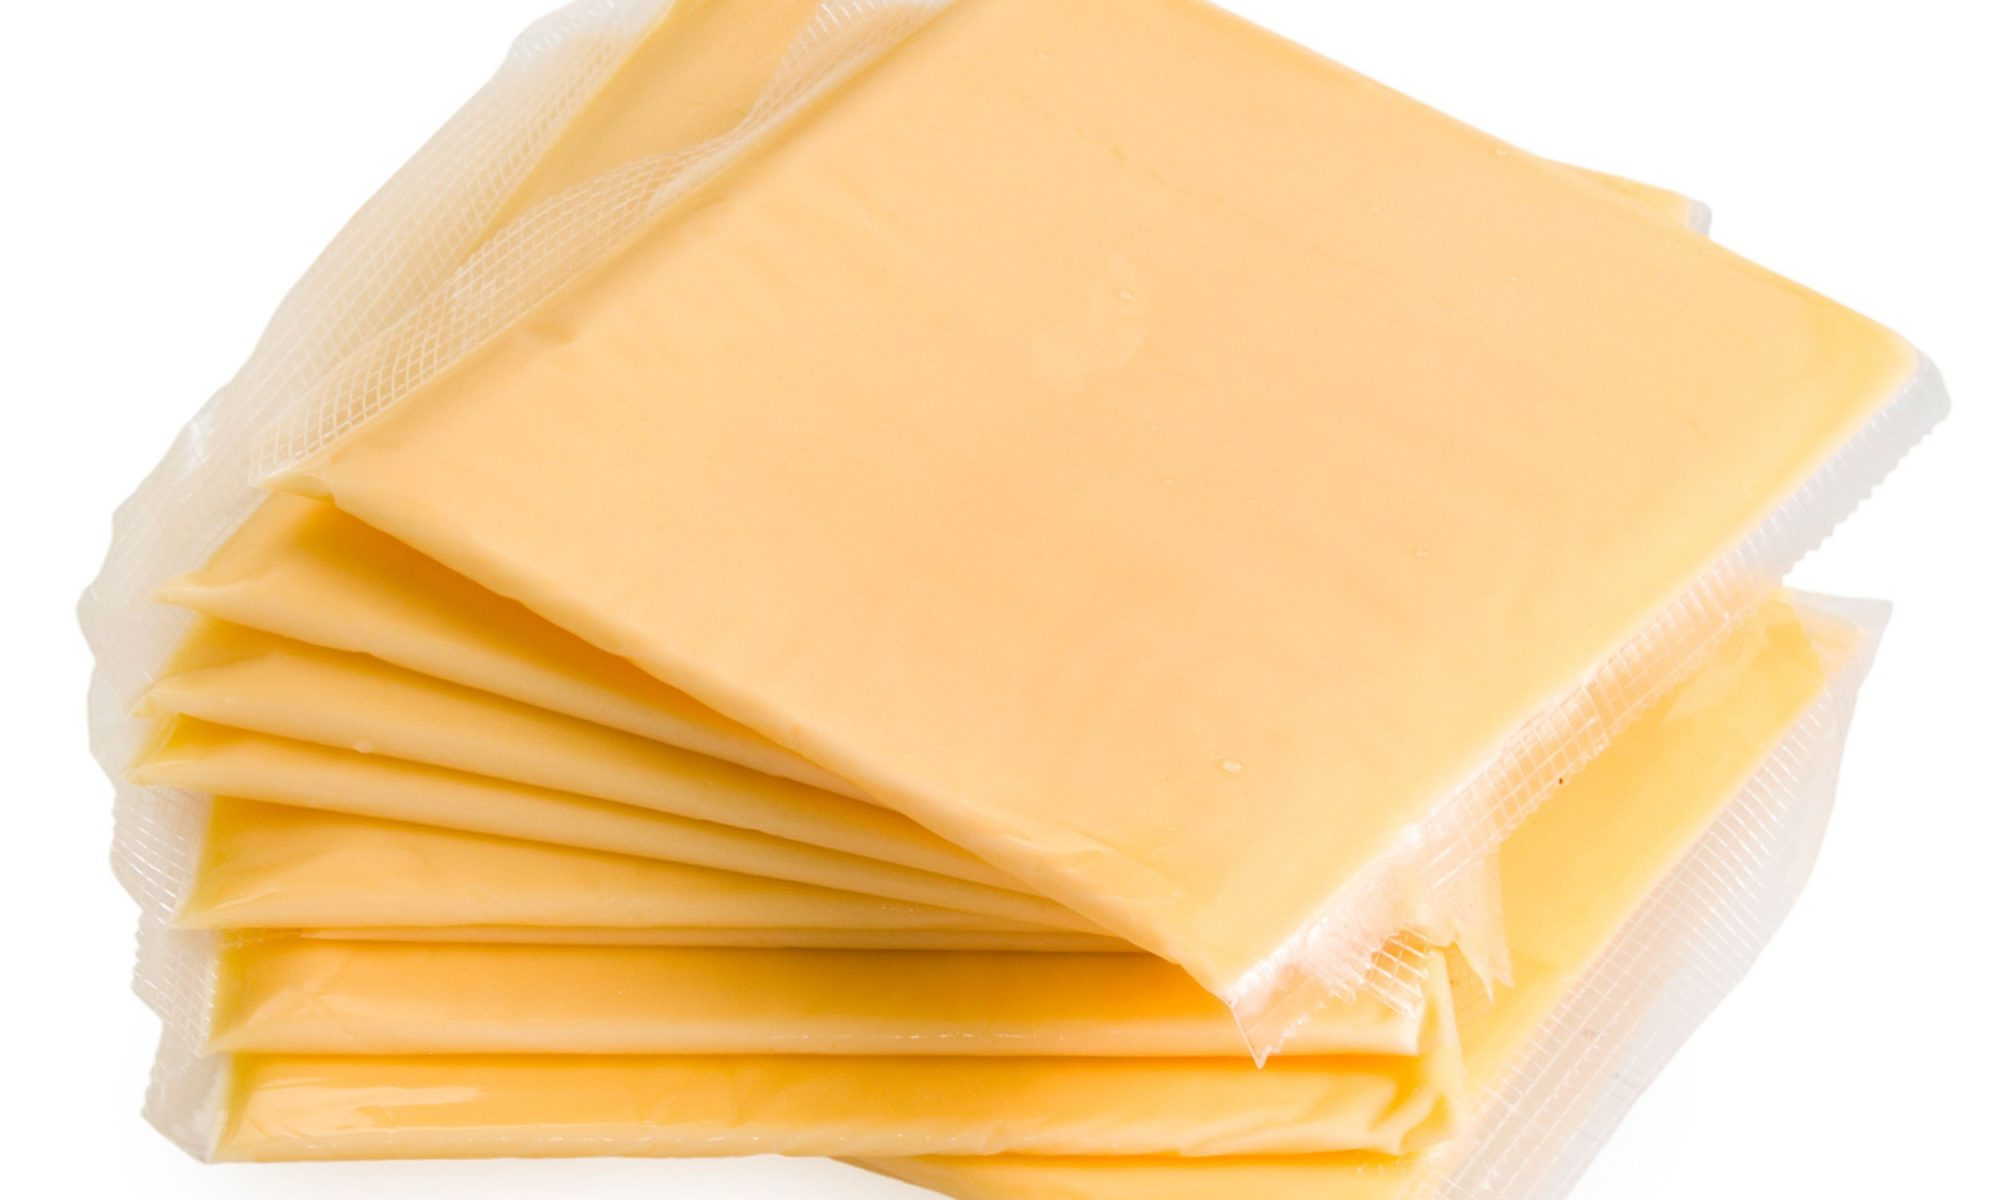 EC: What Are Kraft Singles and Velveeta Really Made Of?